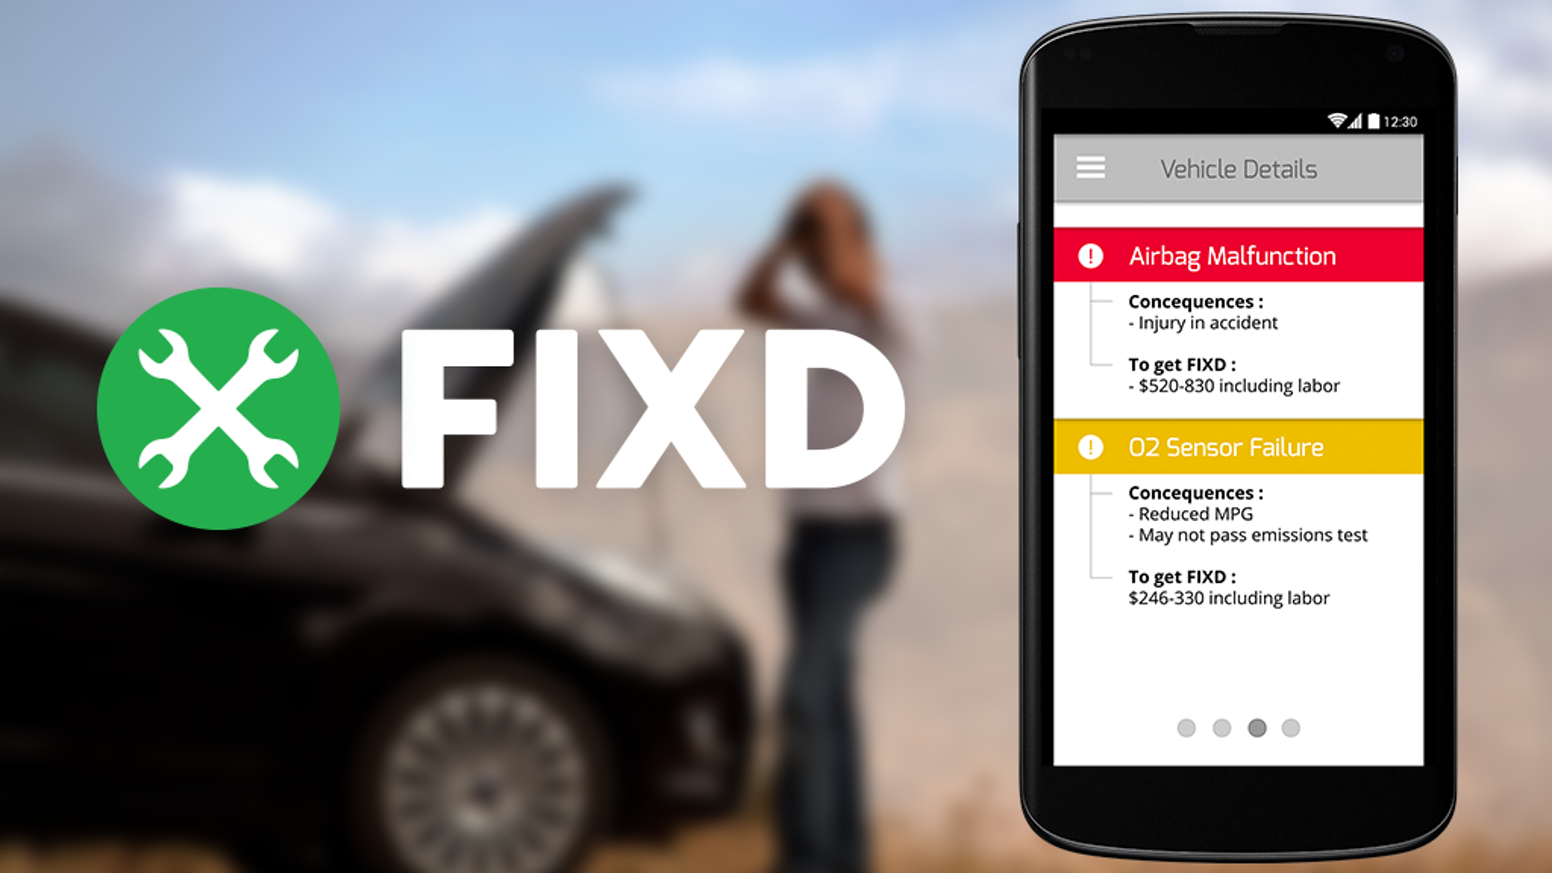 FIXD – Help Prevent Costly Car Repairs?